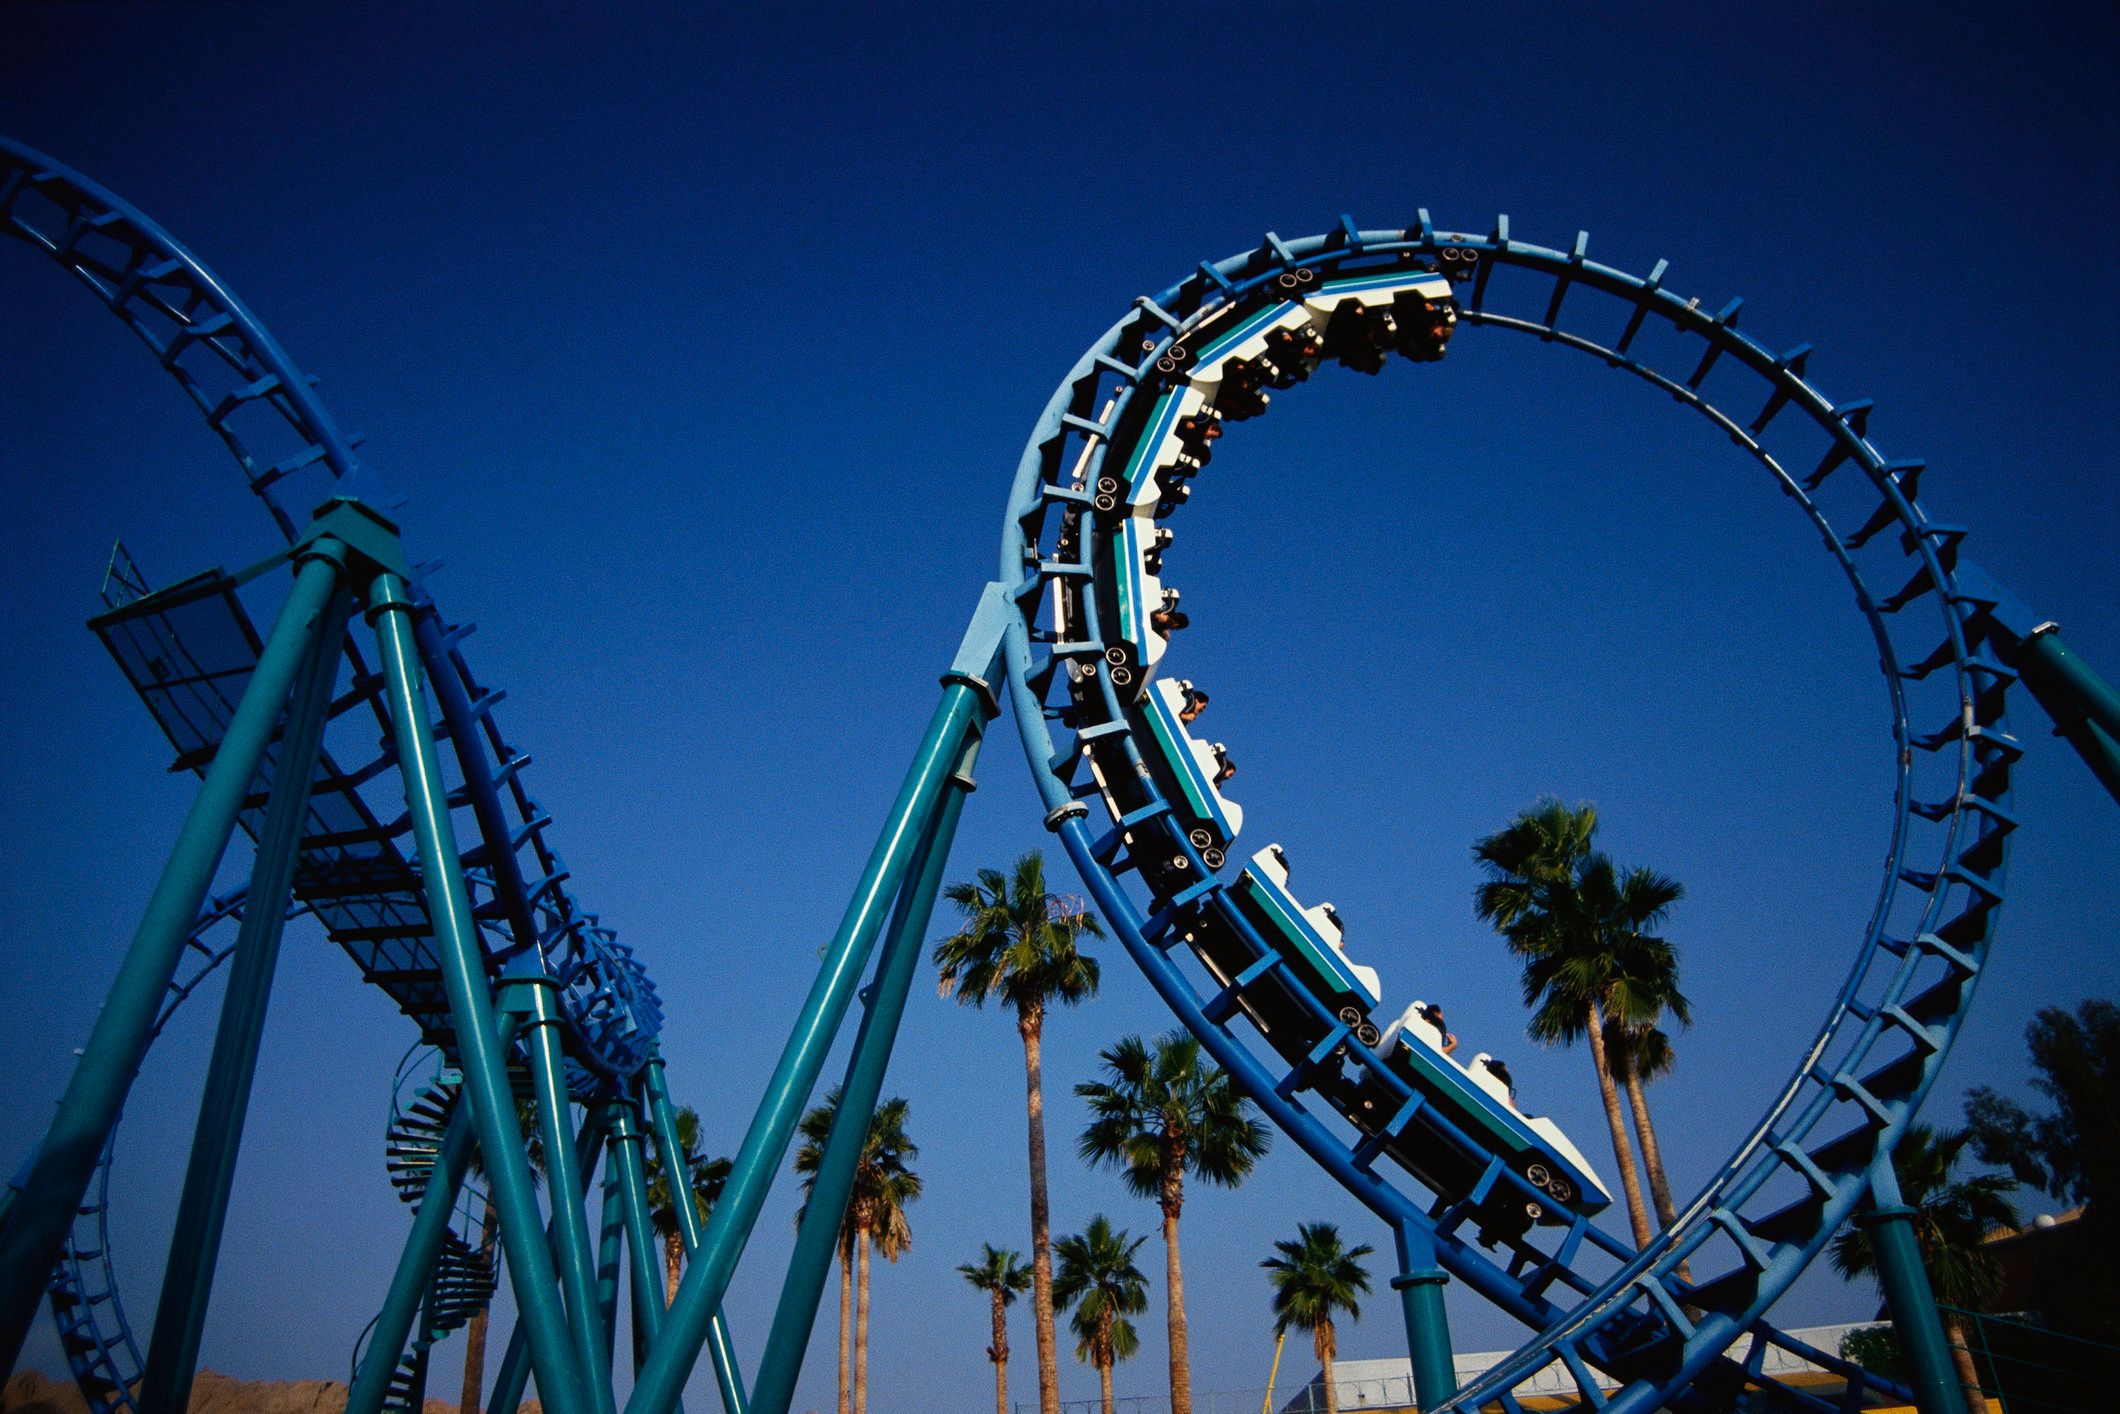 This is the roller coaster at Knott's Berry Farm in Buena Park. This ride is called Montezuma's Revenge.